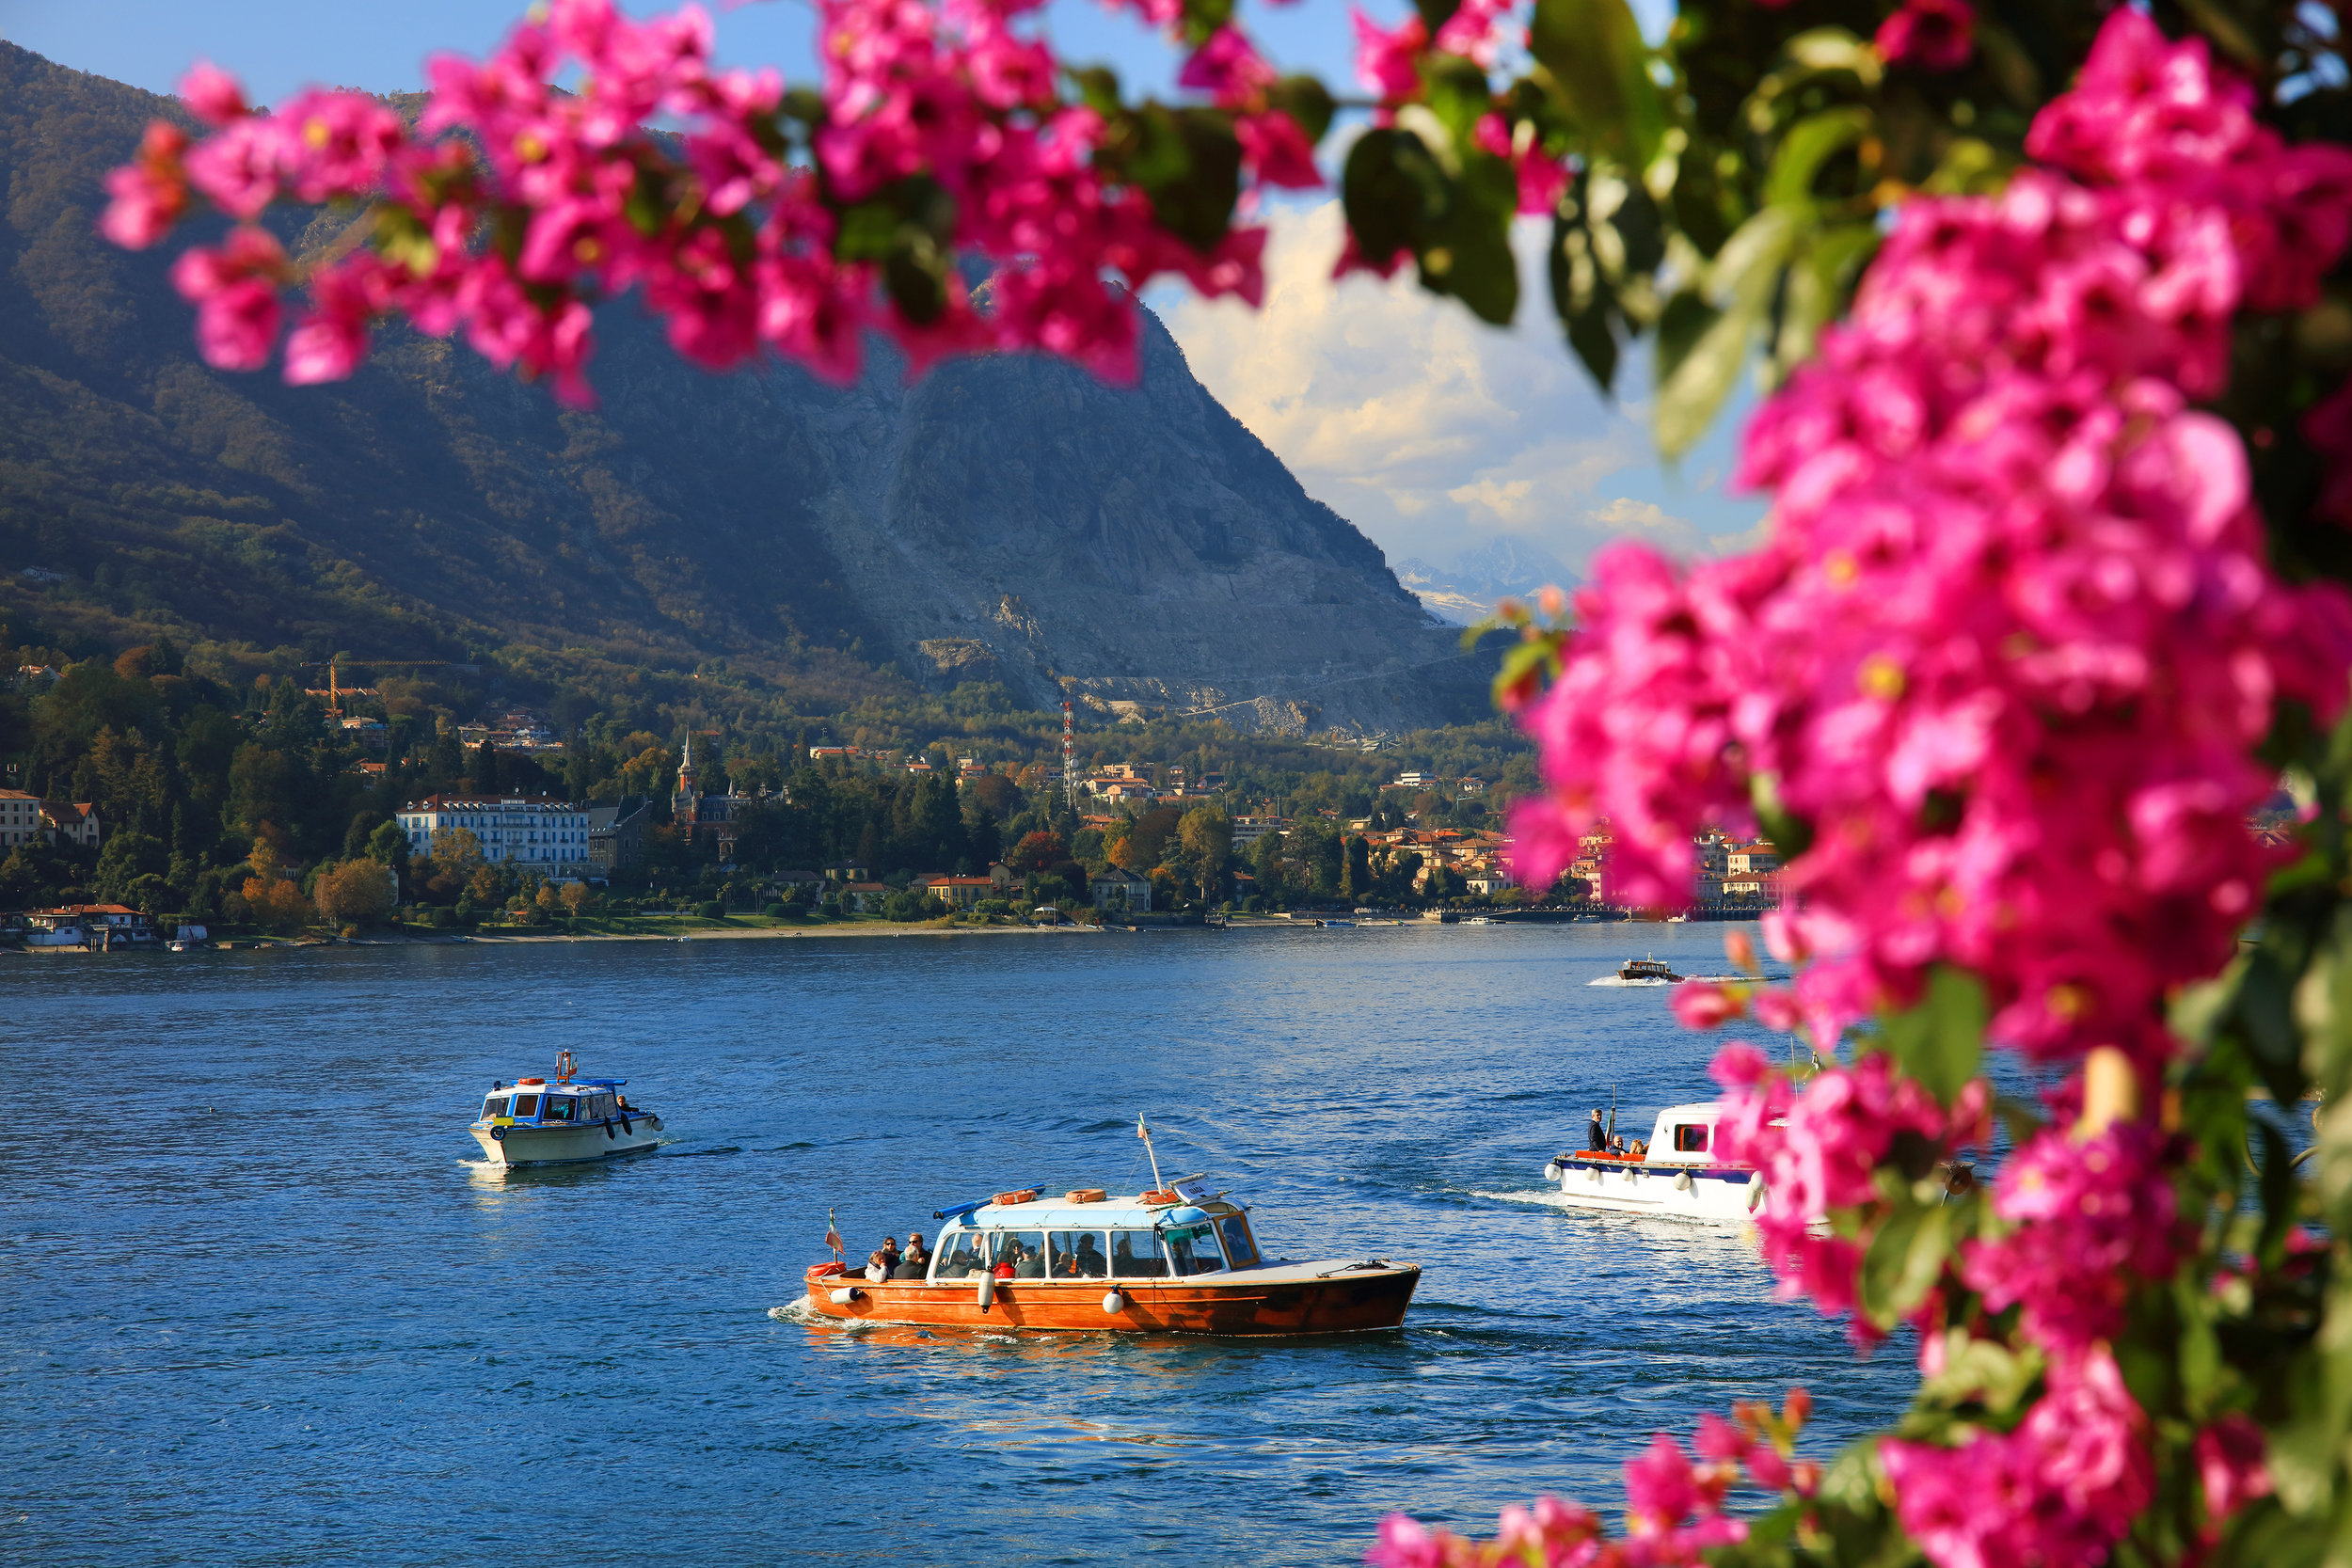 italy_piedmonte_isola_bella_bigstock-Scenic-view-of-the-Isola-Bella-170020031.jpg